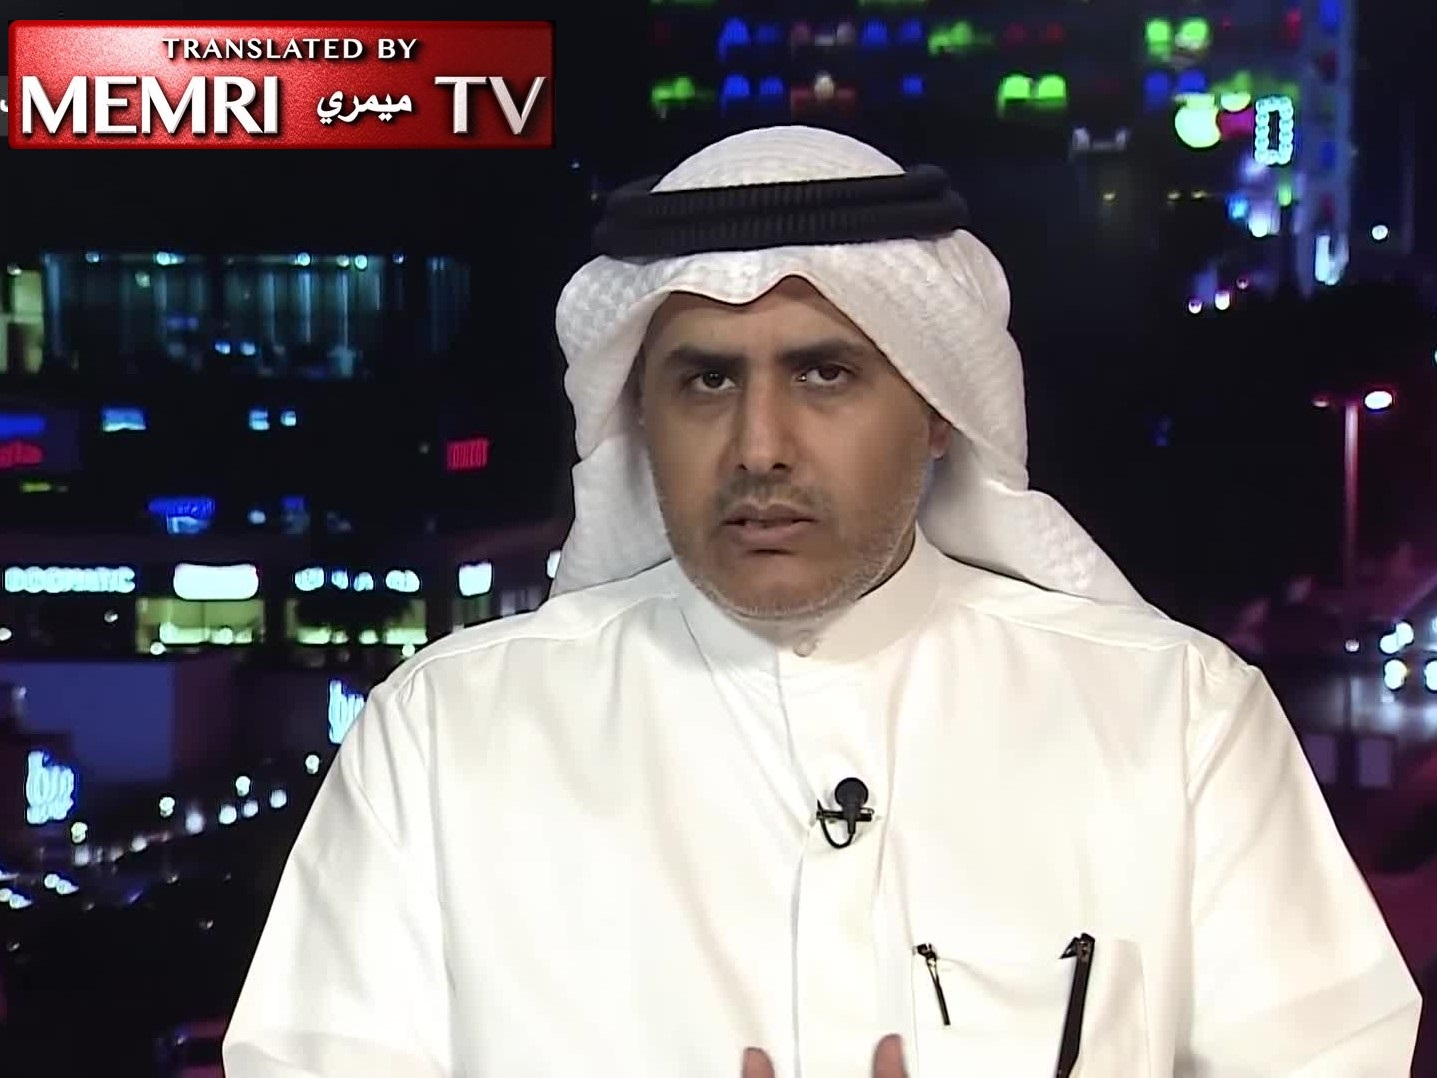 Kuwaiti Professor Dr. Faisal Abu Sulaib: The Gulf States Are in Shock and Terrified following Attack on Aramco; KSA Cannot Provide Security to GCC States